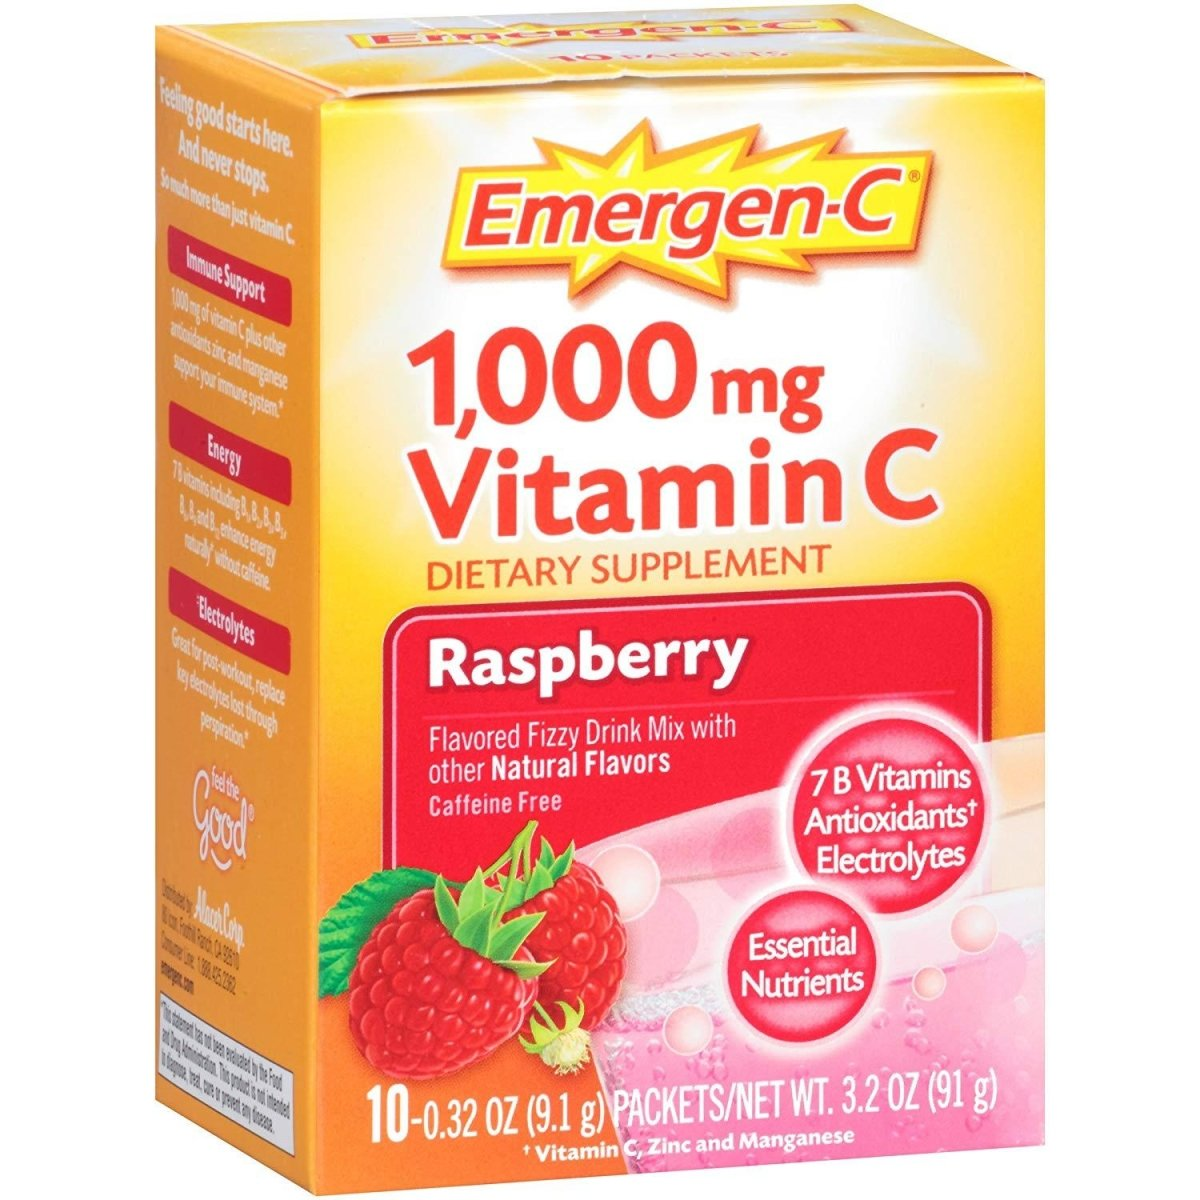 Raspberry 1,000 mg Vitamin C Fizzy Drink Mix 10 Pack